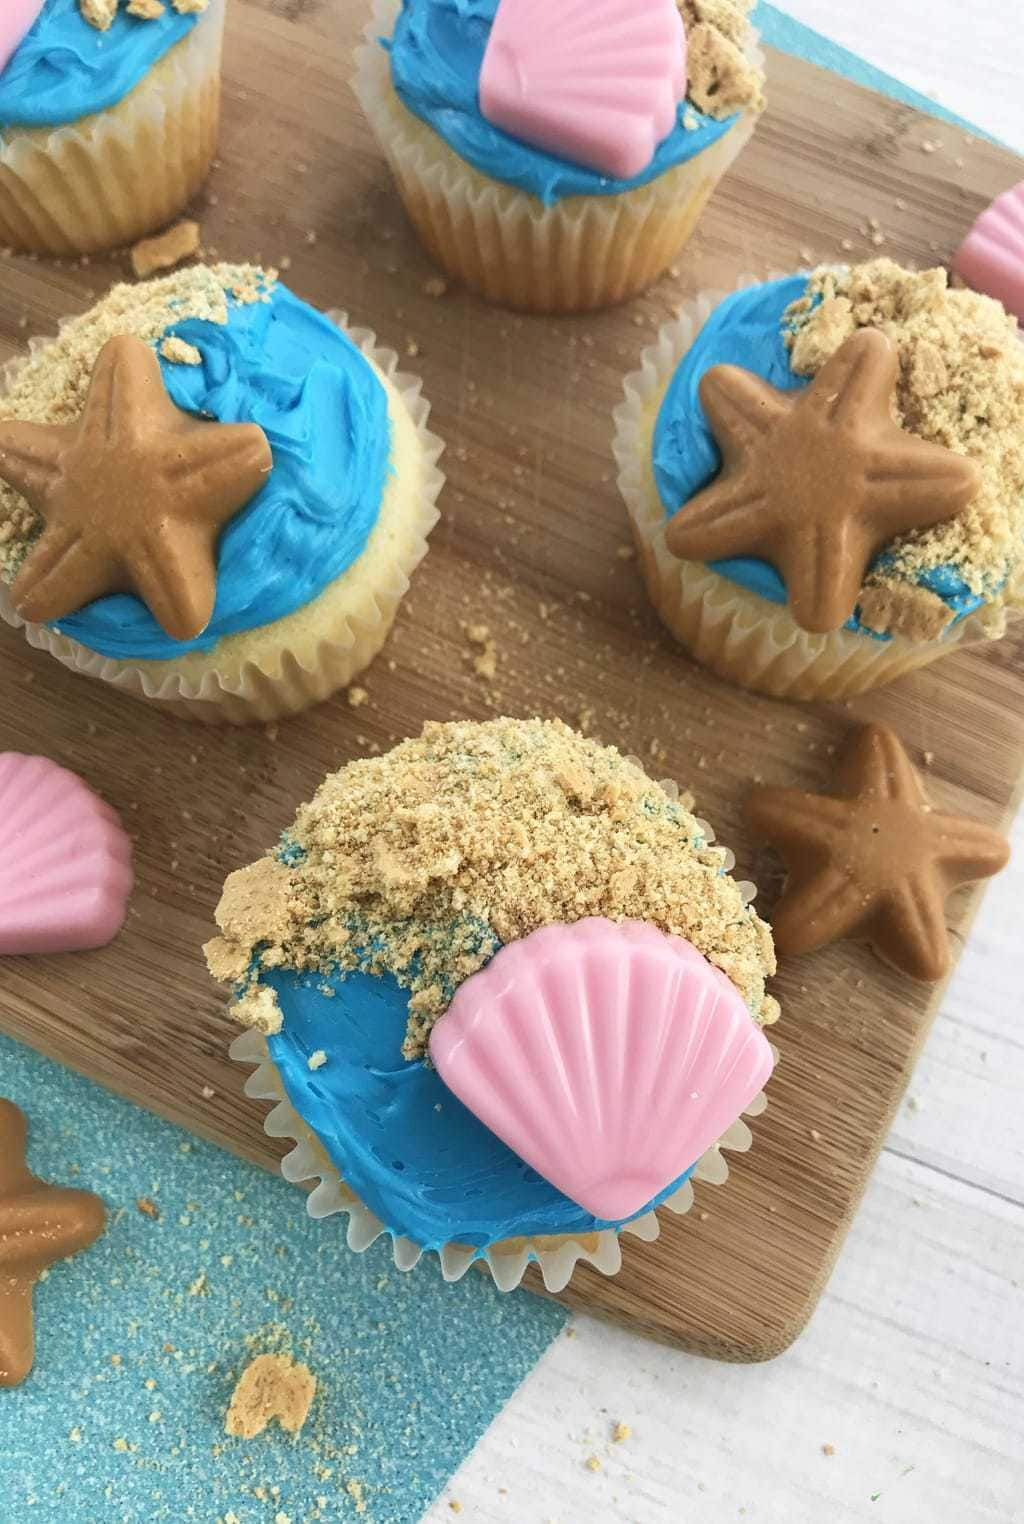 If you are looking for the perfect summer cupcake recipe and planning a beach-themed birthday party, these Summer Beach Themed Cupcakes are simply adorable.